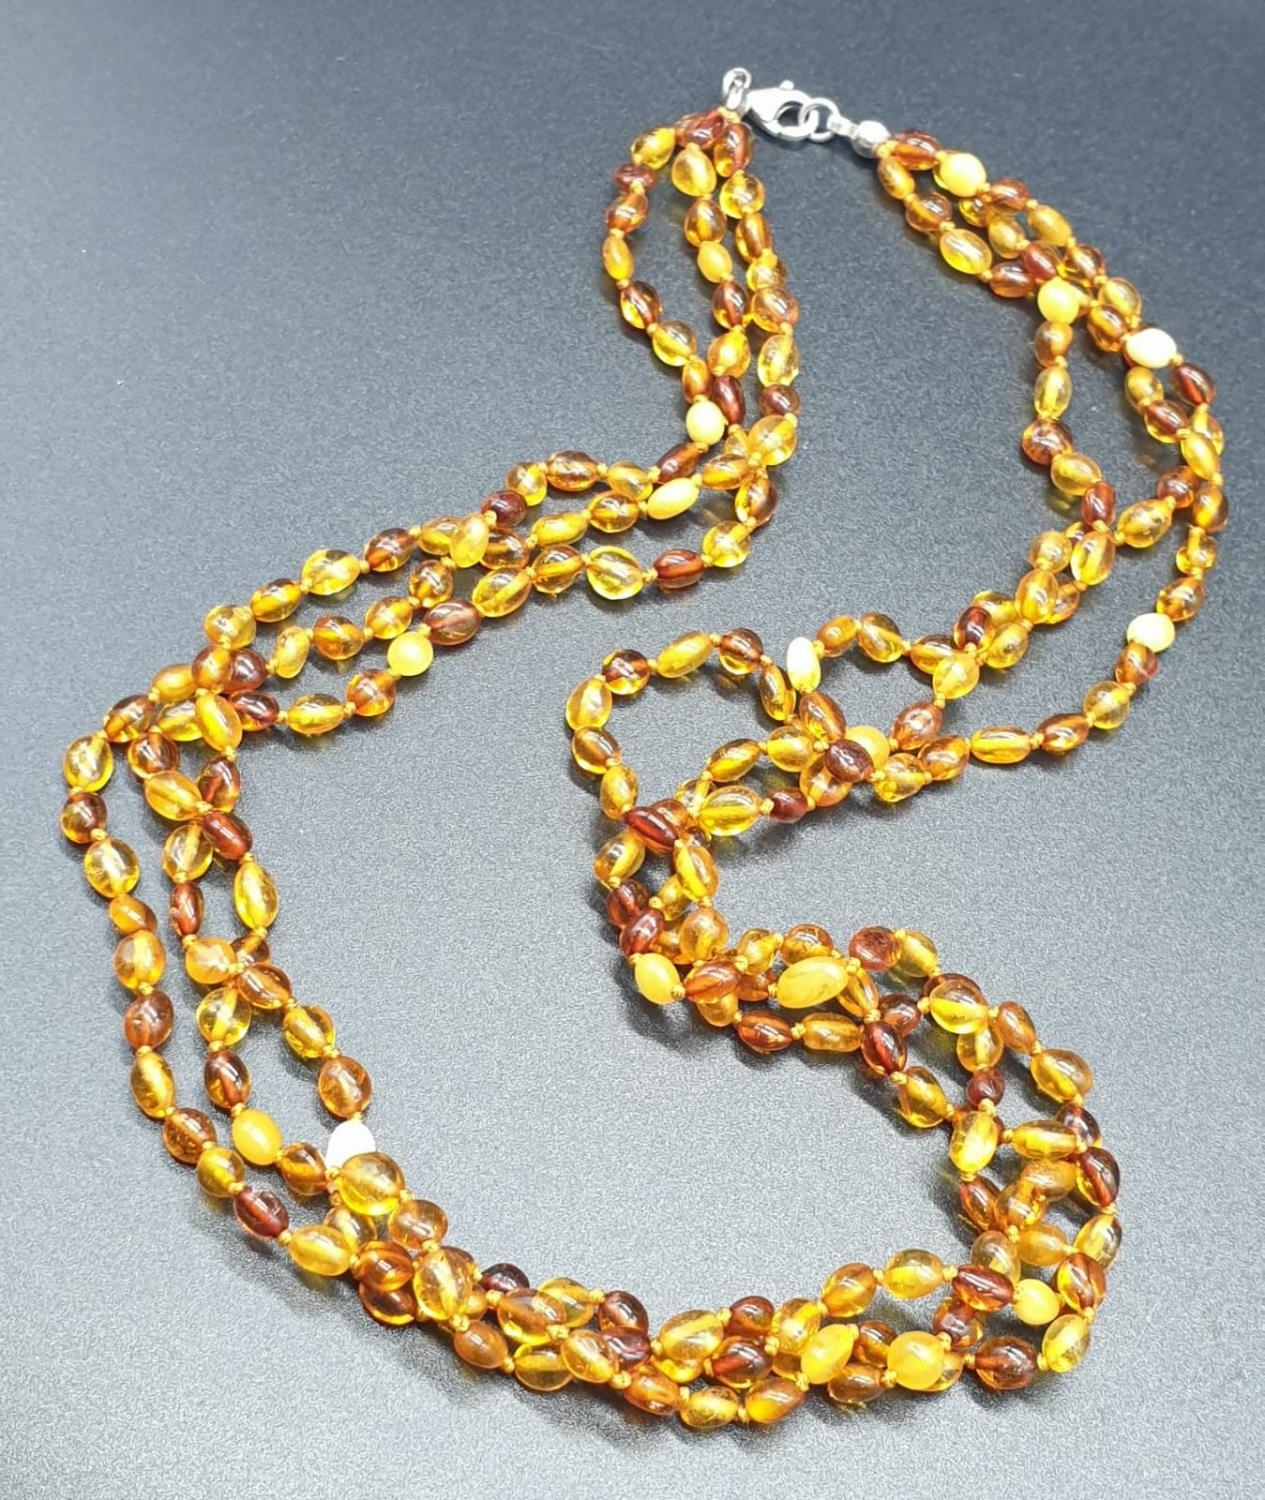 3 Rows Amber Necklace with Silver Clasp 14.8g 45cms - Image 3 of 4